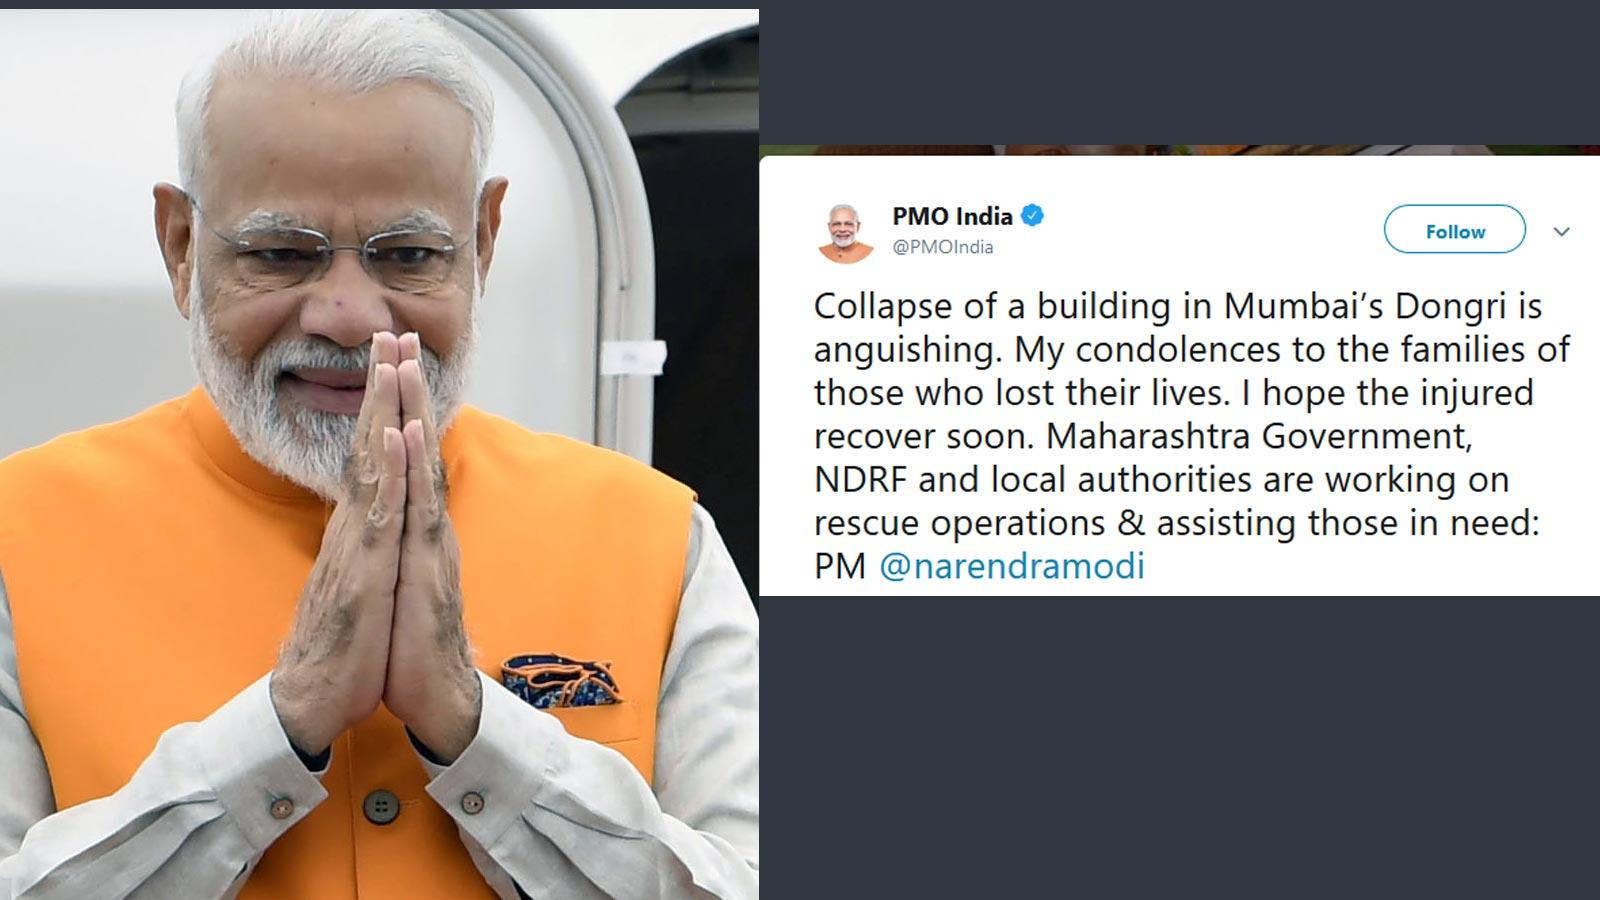 narendra-modi-expresses-condolences-for-mumbai-building-collapse-victims